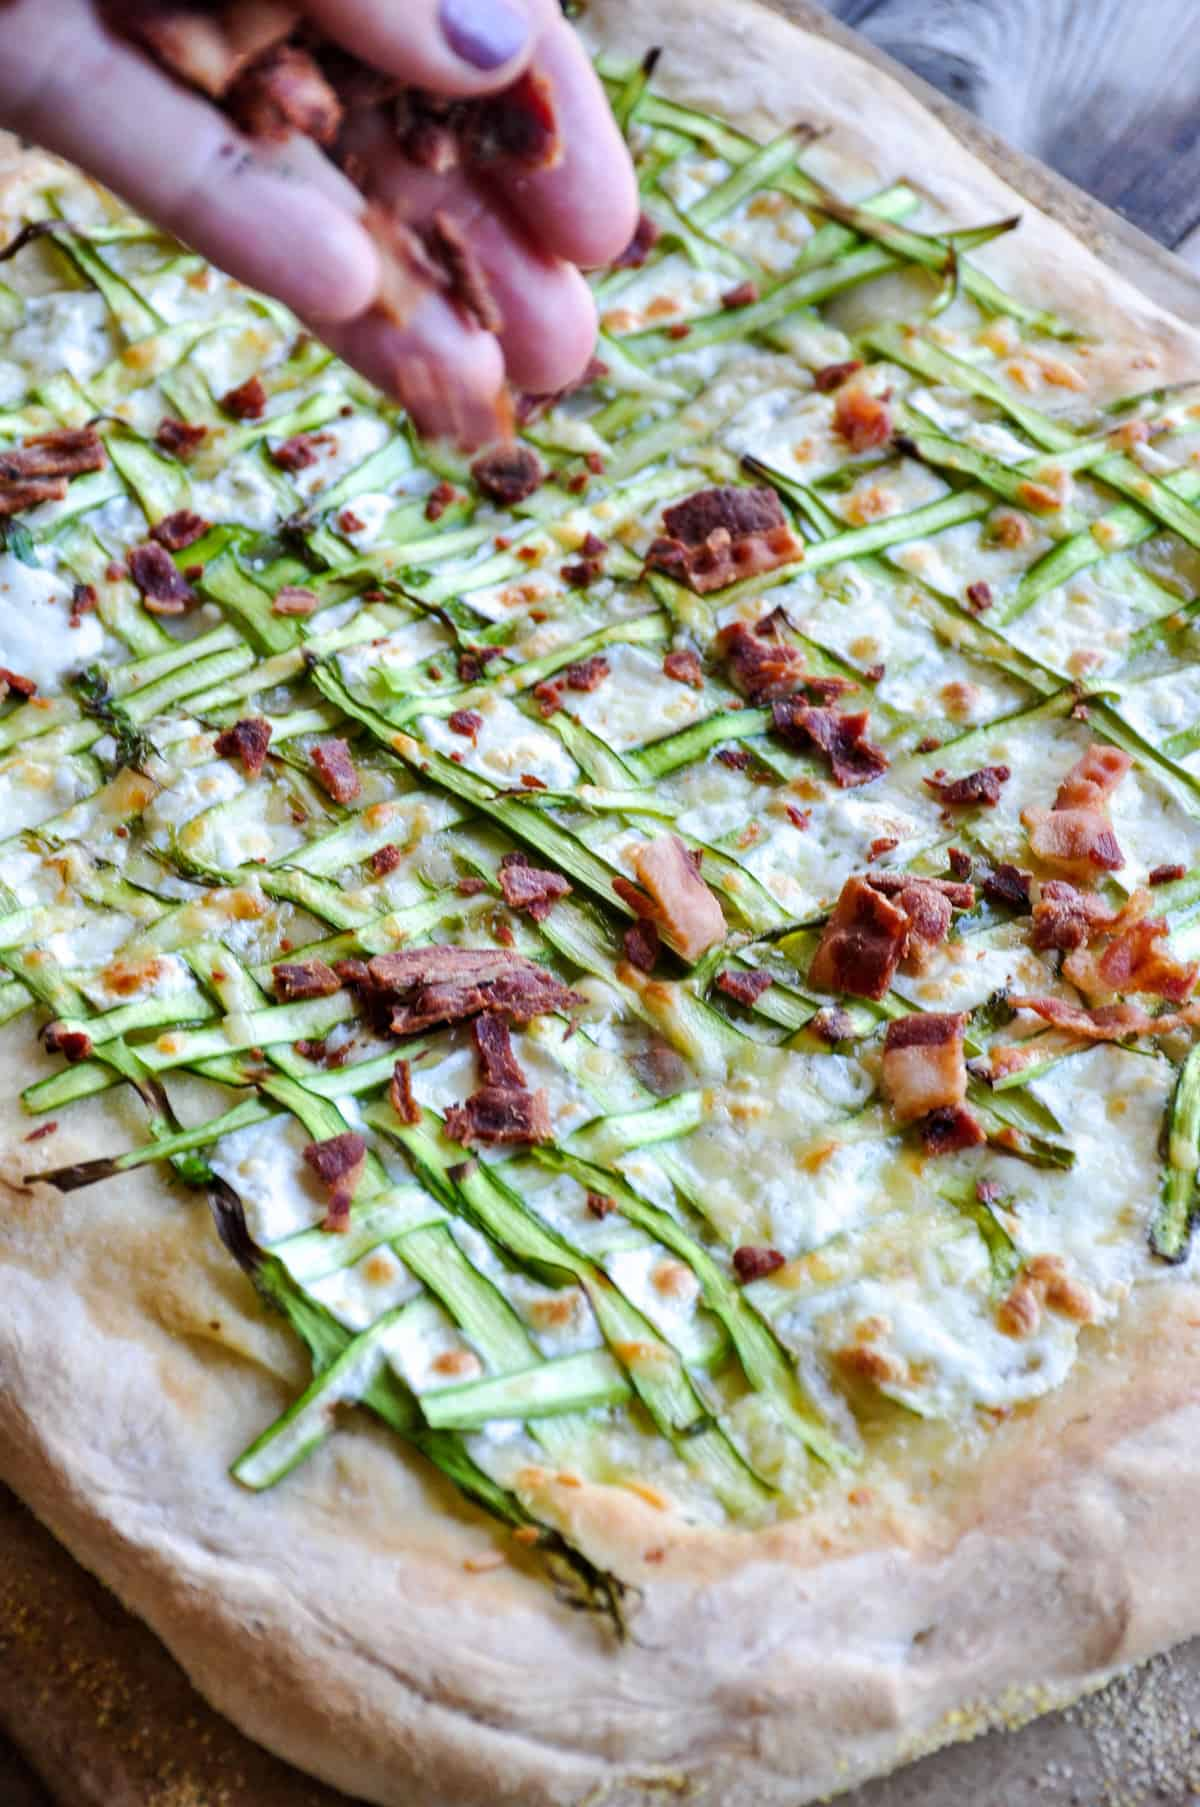 Bacon added to Asparagus Pizza Ribbon